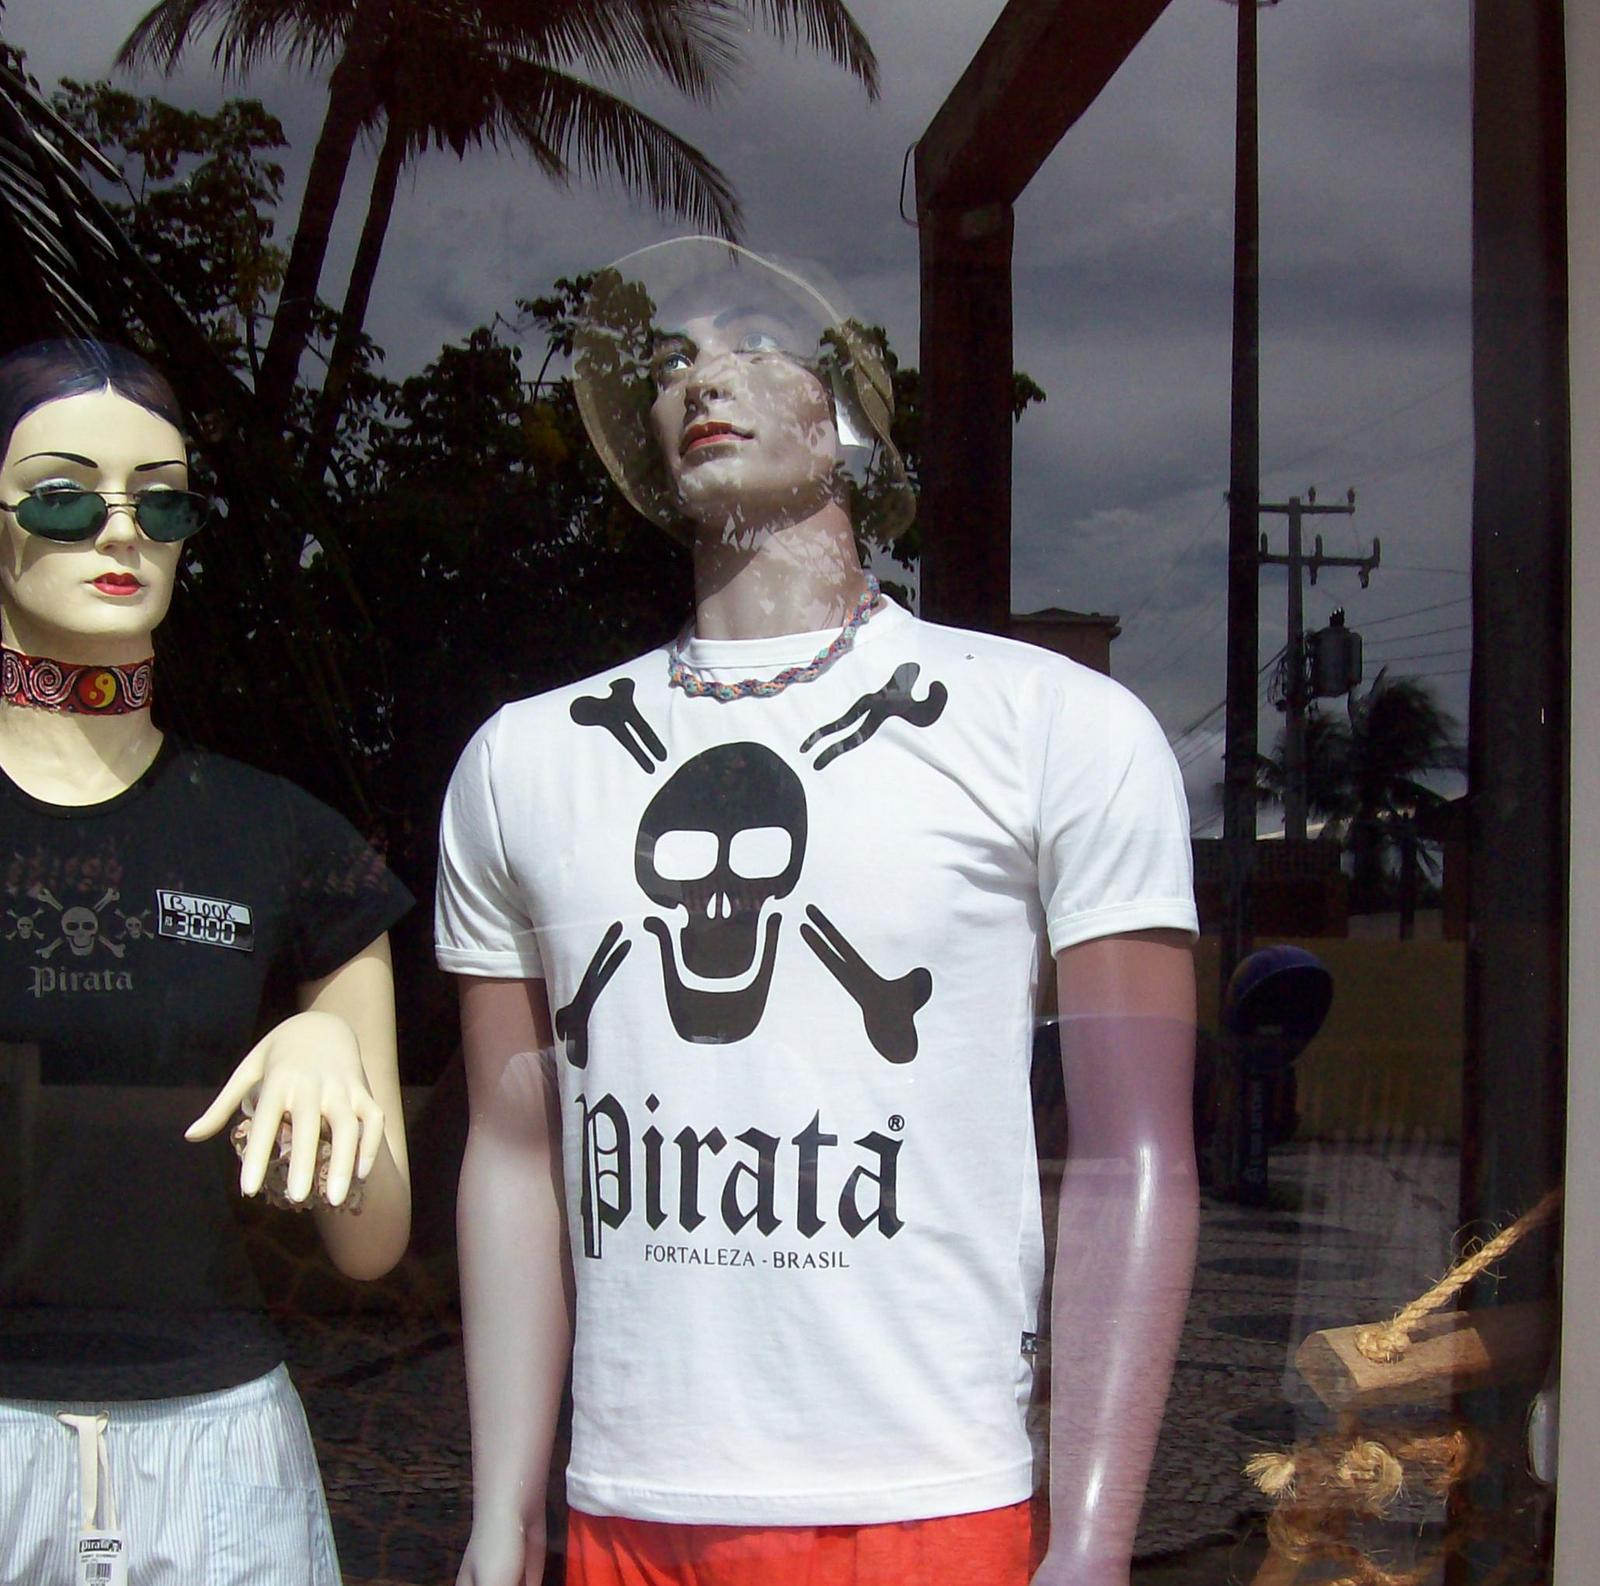 Pirata Shop - Fortaleza